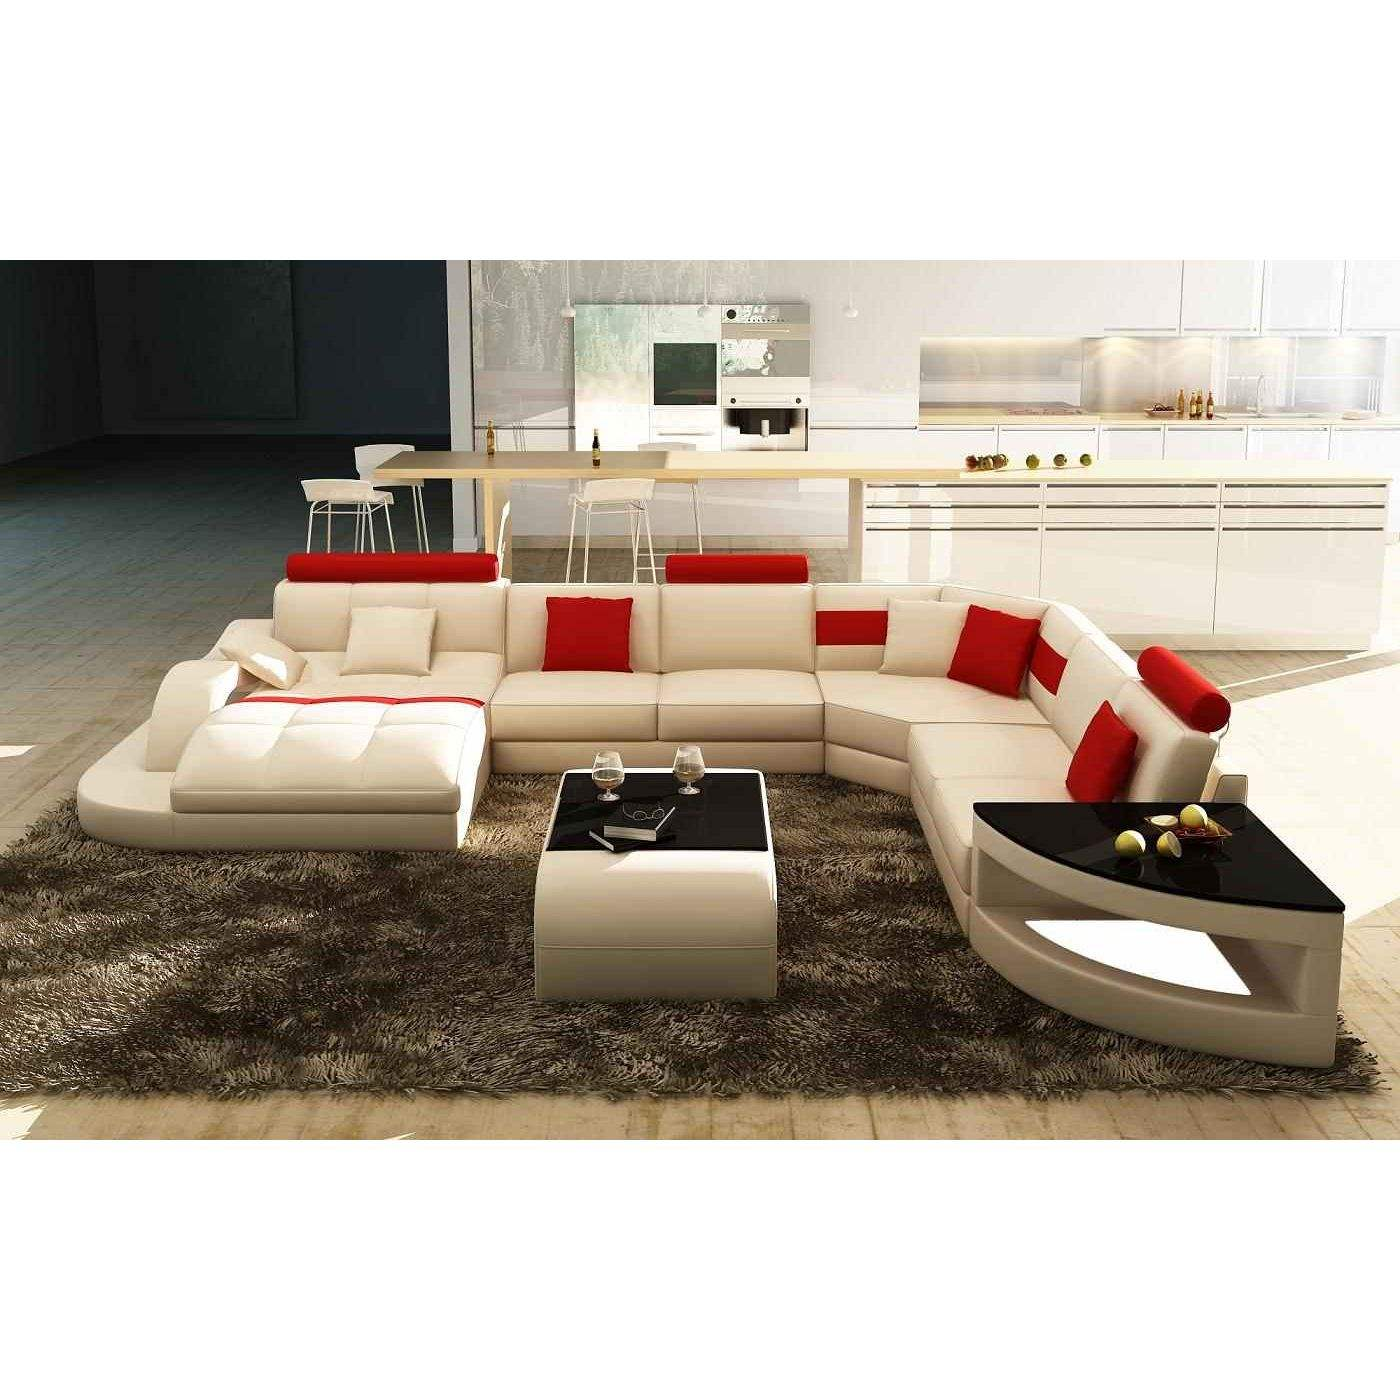 Deco in paris canape d angle design panoramique blanc et for Canape et fauteuil design